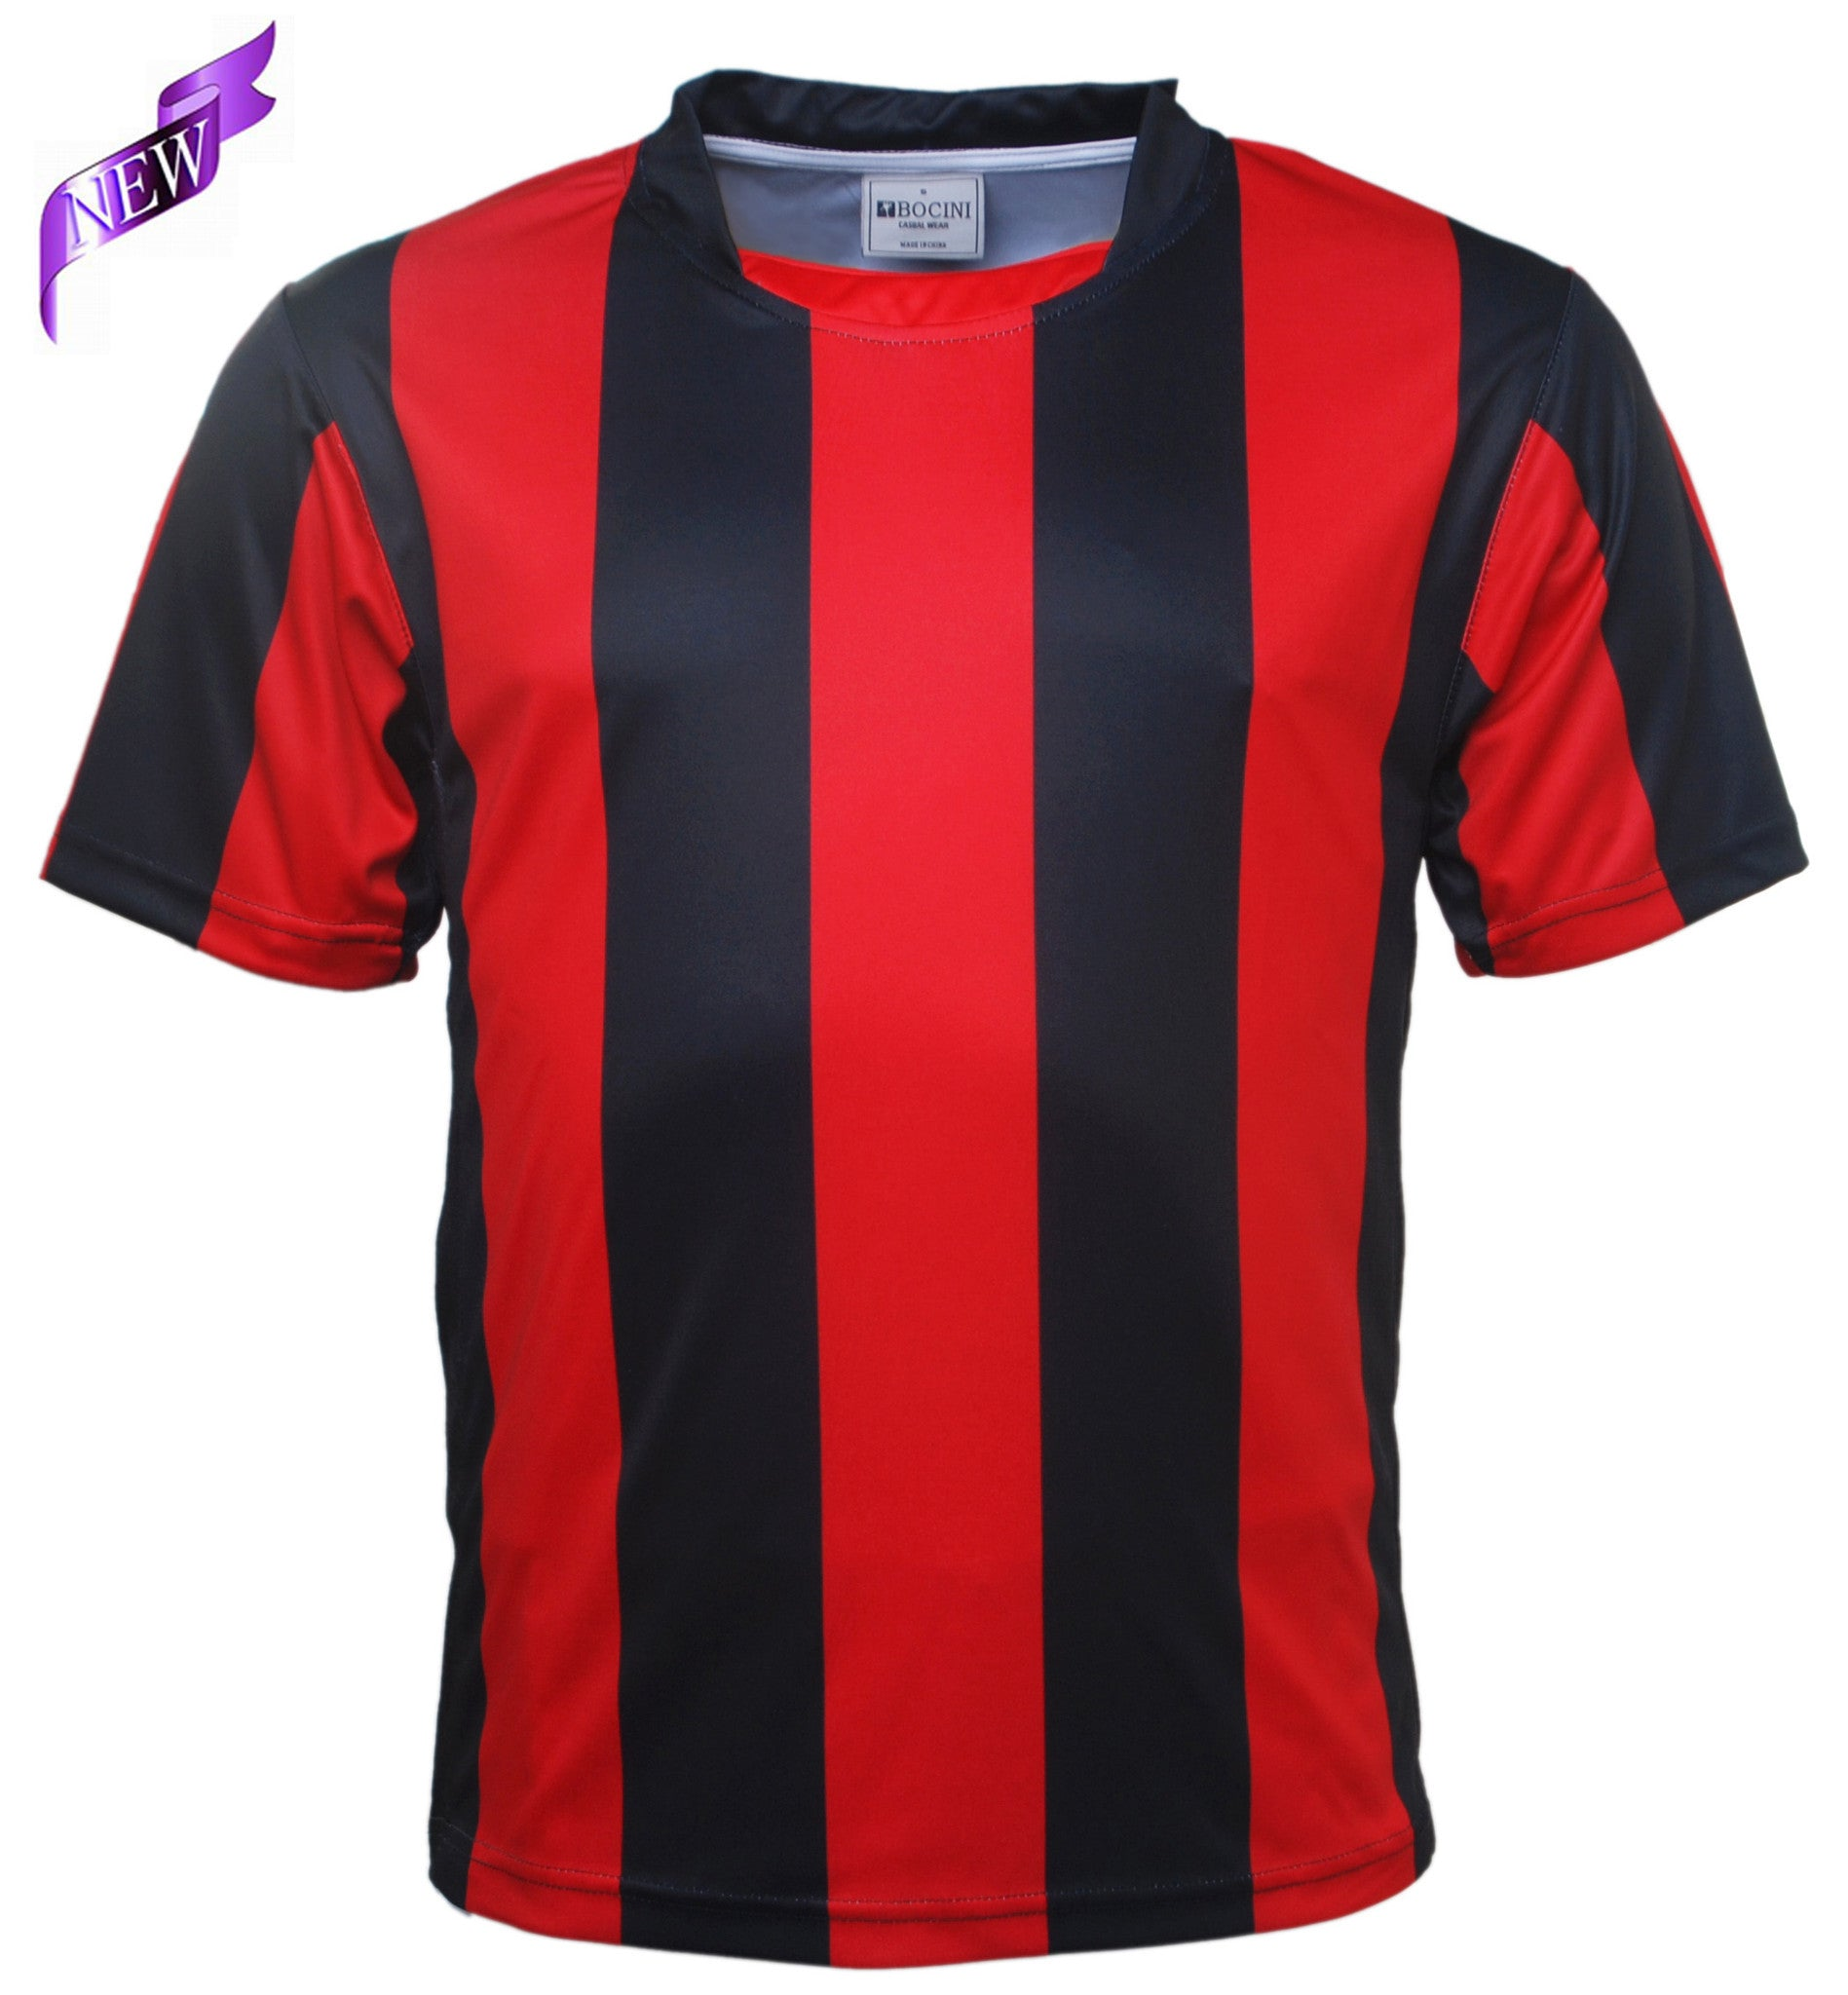 a76fea970fc Bocini-Bocini Adults Striped Football Jersey-Black Red   S-Uniform  Wholesalers